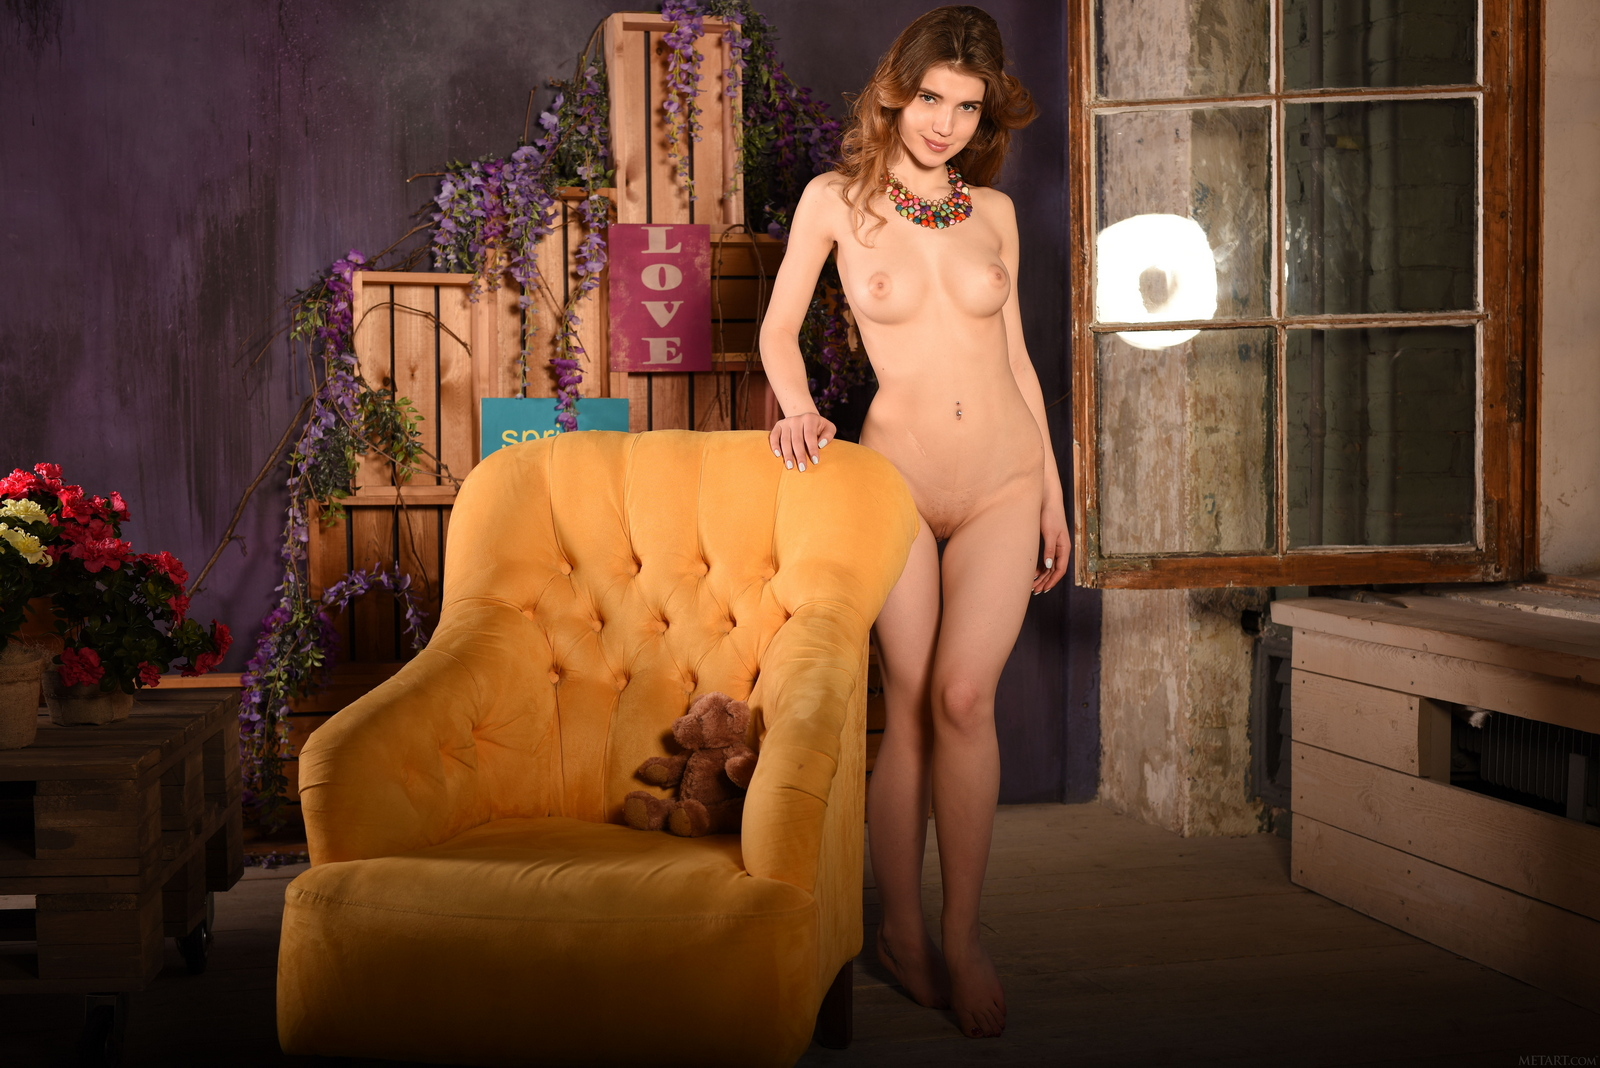 caramel-yellow-armchair-young-nude-pussy-met-art-08